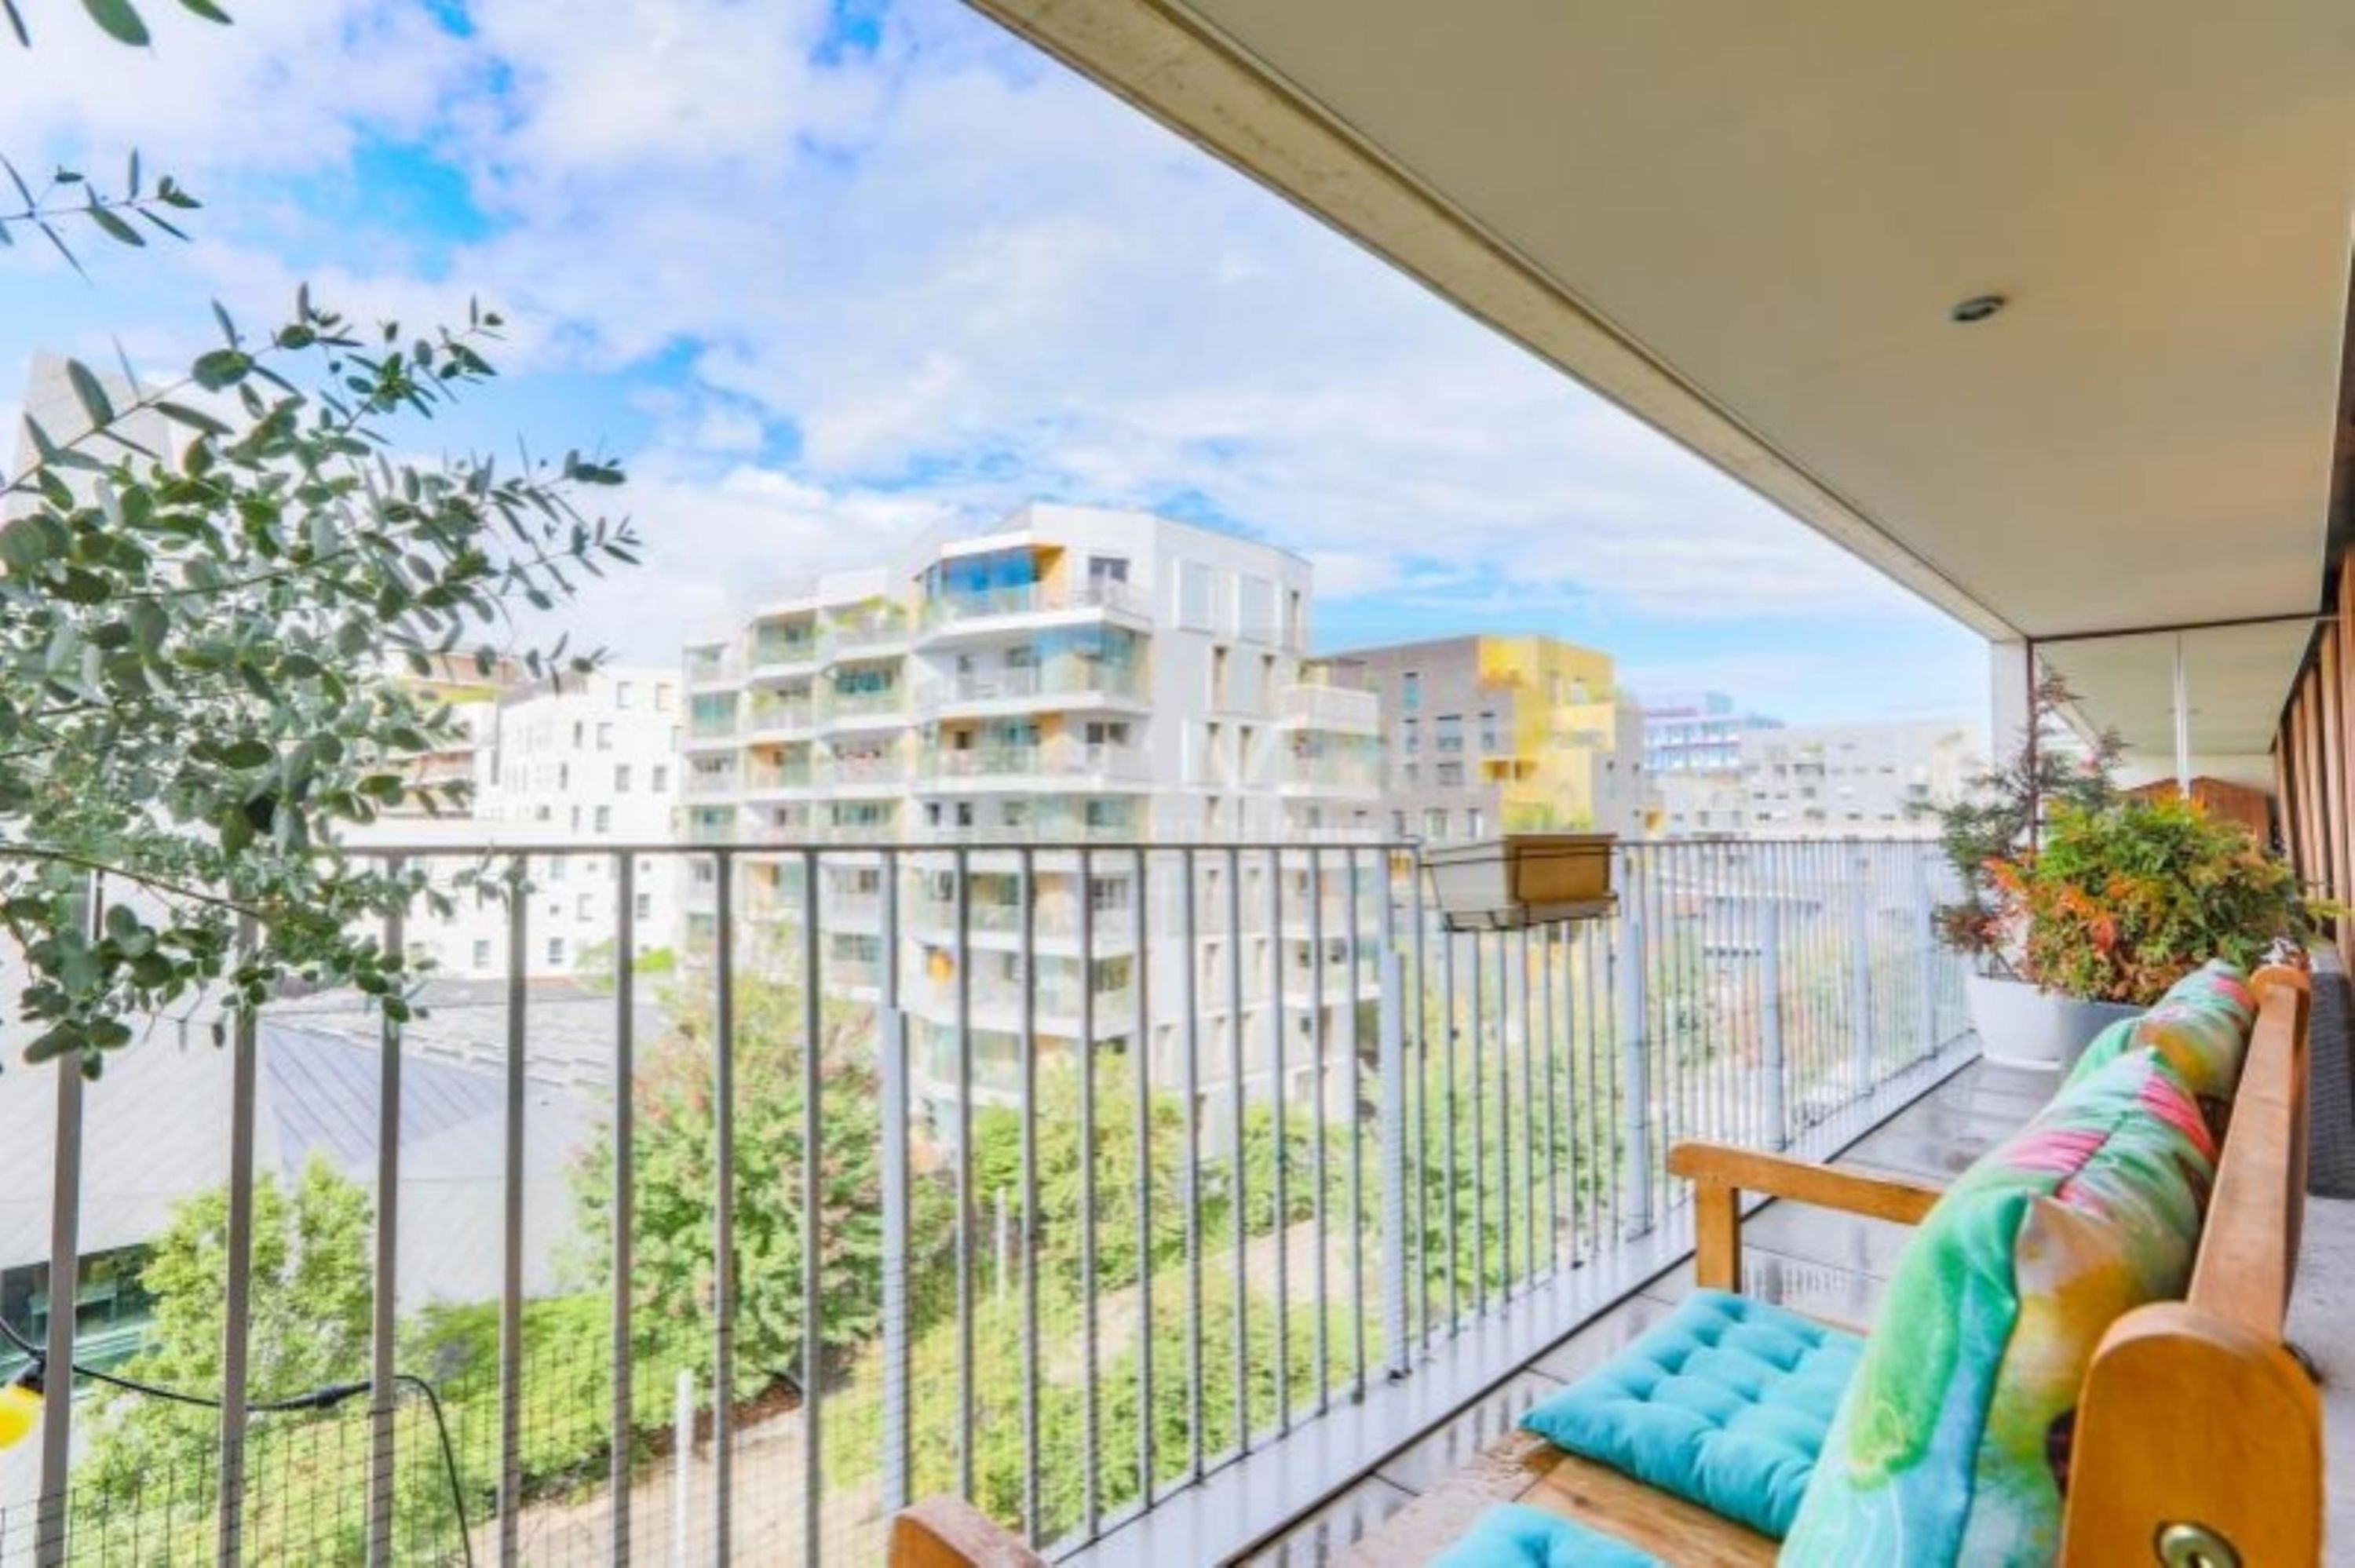 agence immobilière sevres 92 le chesnay 78 achat vente location appartement maison immobilier LMHT ANF SGZFXAQI